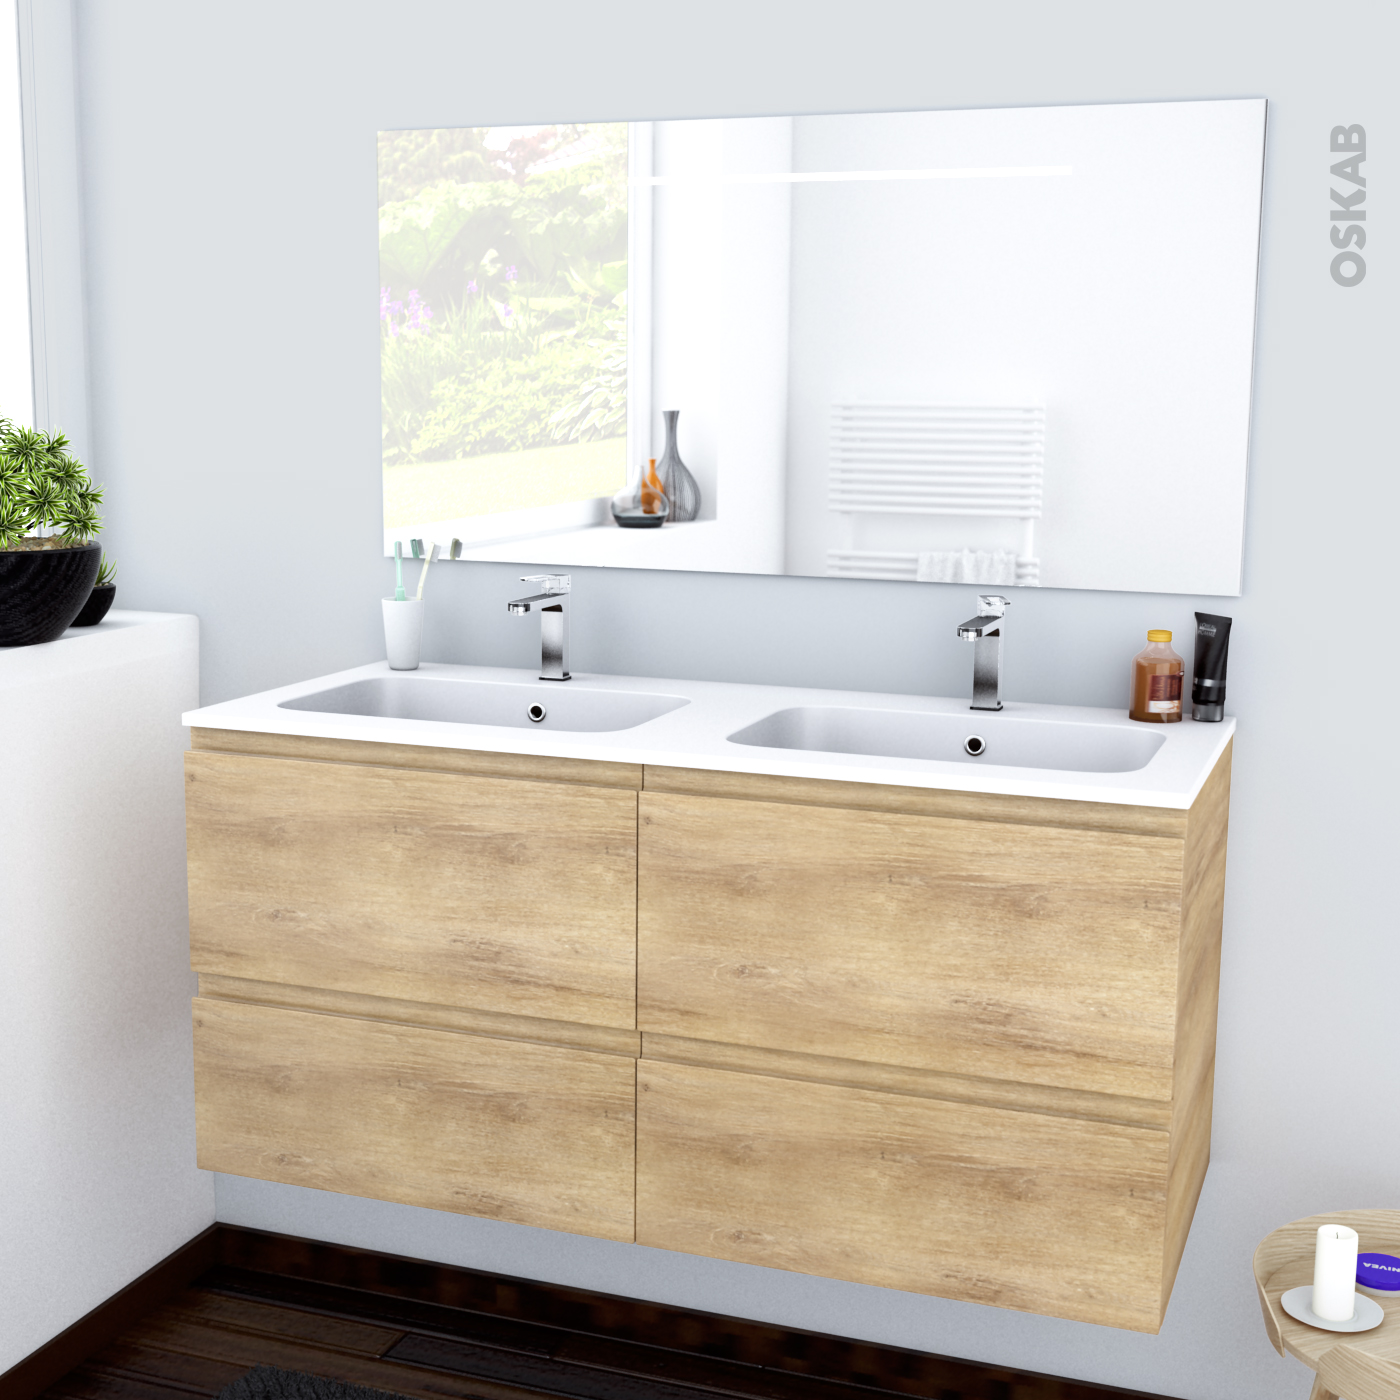 Lavabo double vasque retro hudson reed ensemble meuble de for Ensemble salle de bain double vasque pas cher